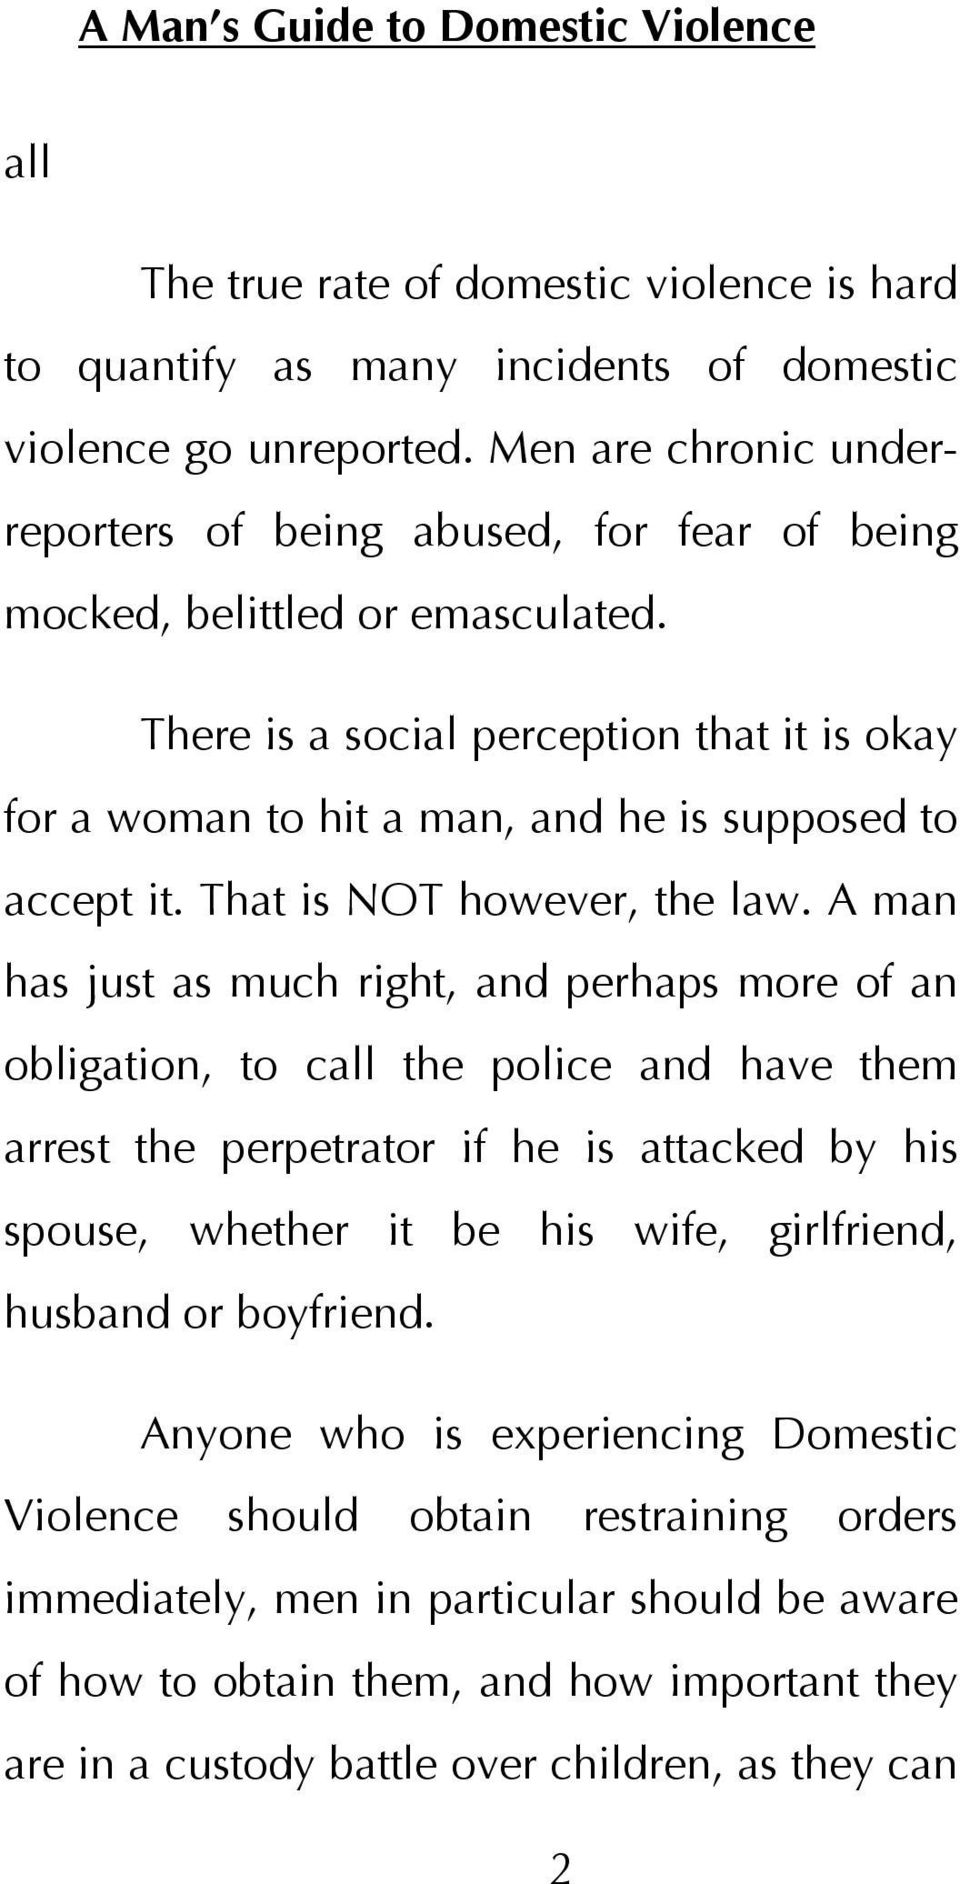 There is a social perception that it is okay for a woman to hit a man, and he is supposed to accept it. That is NOT however, the law.